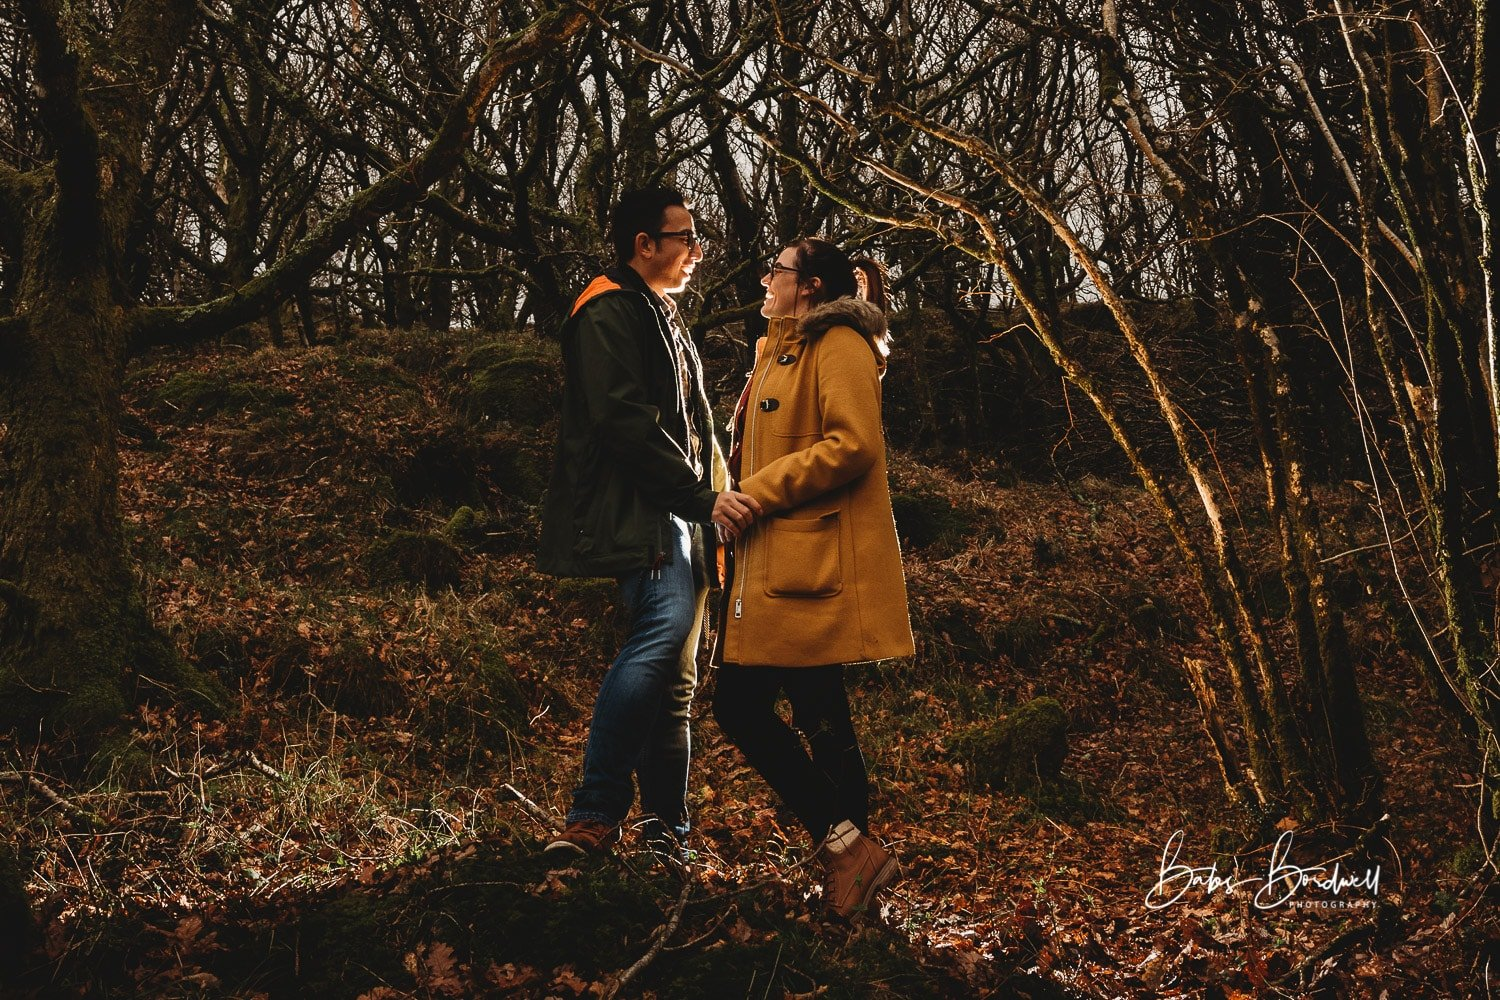 engaged couple in forest looking at each other and holding hands